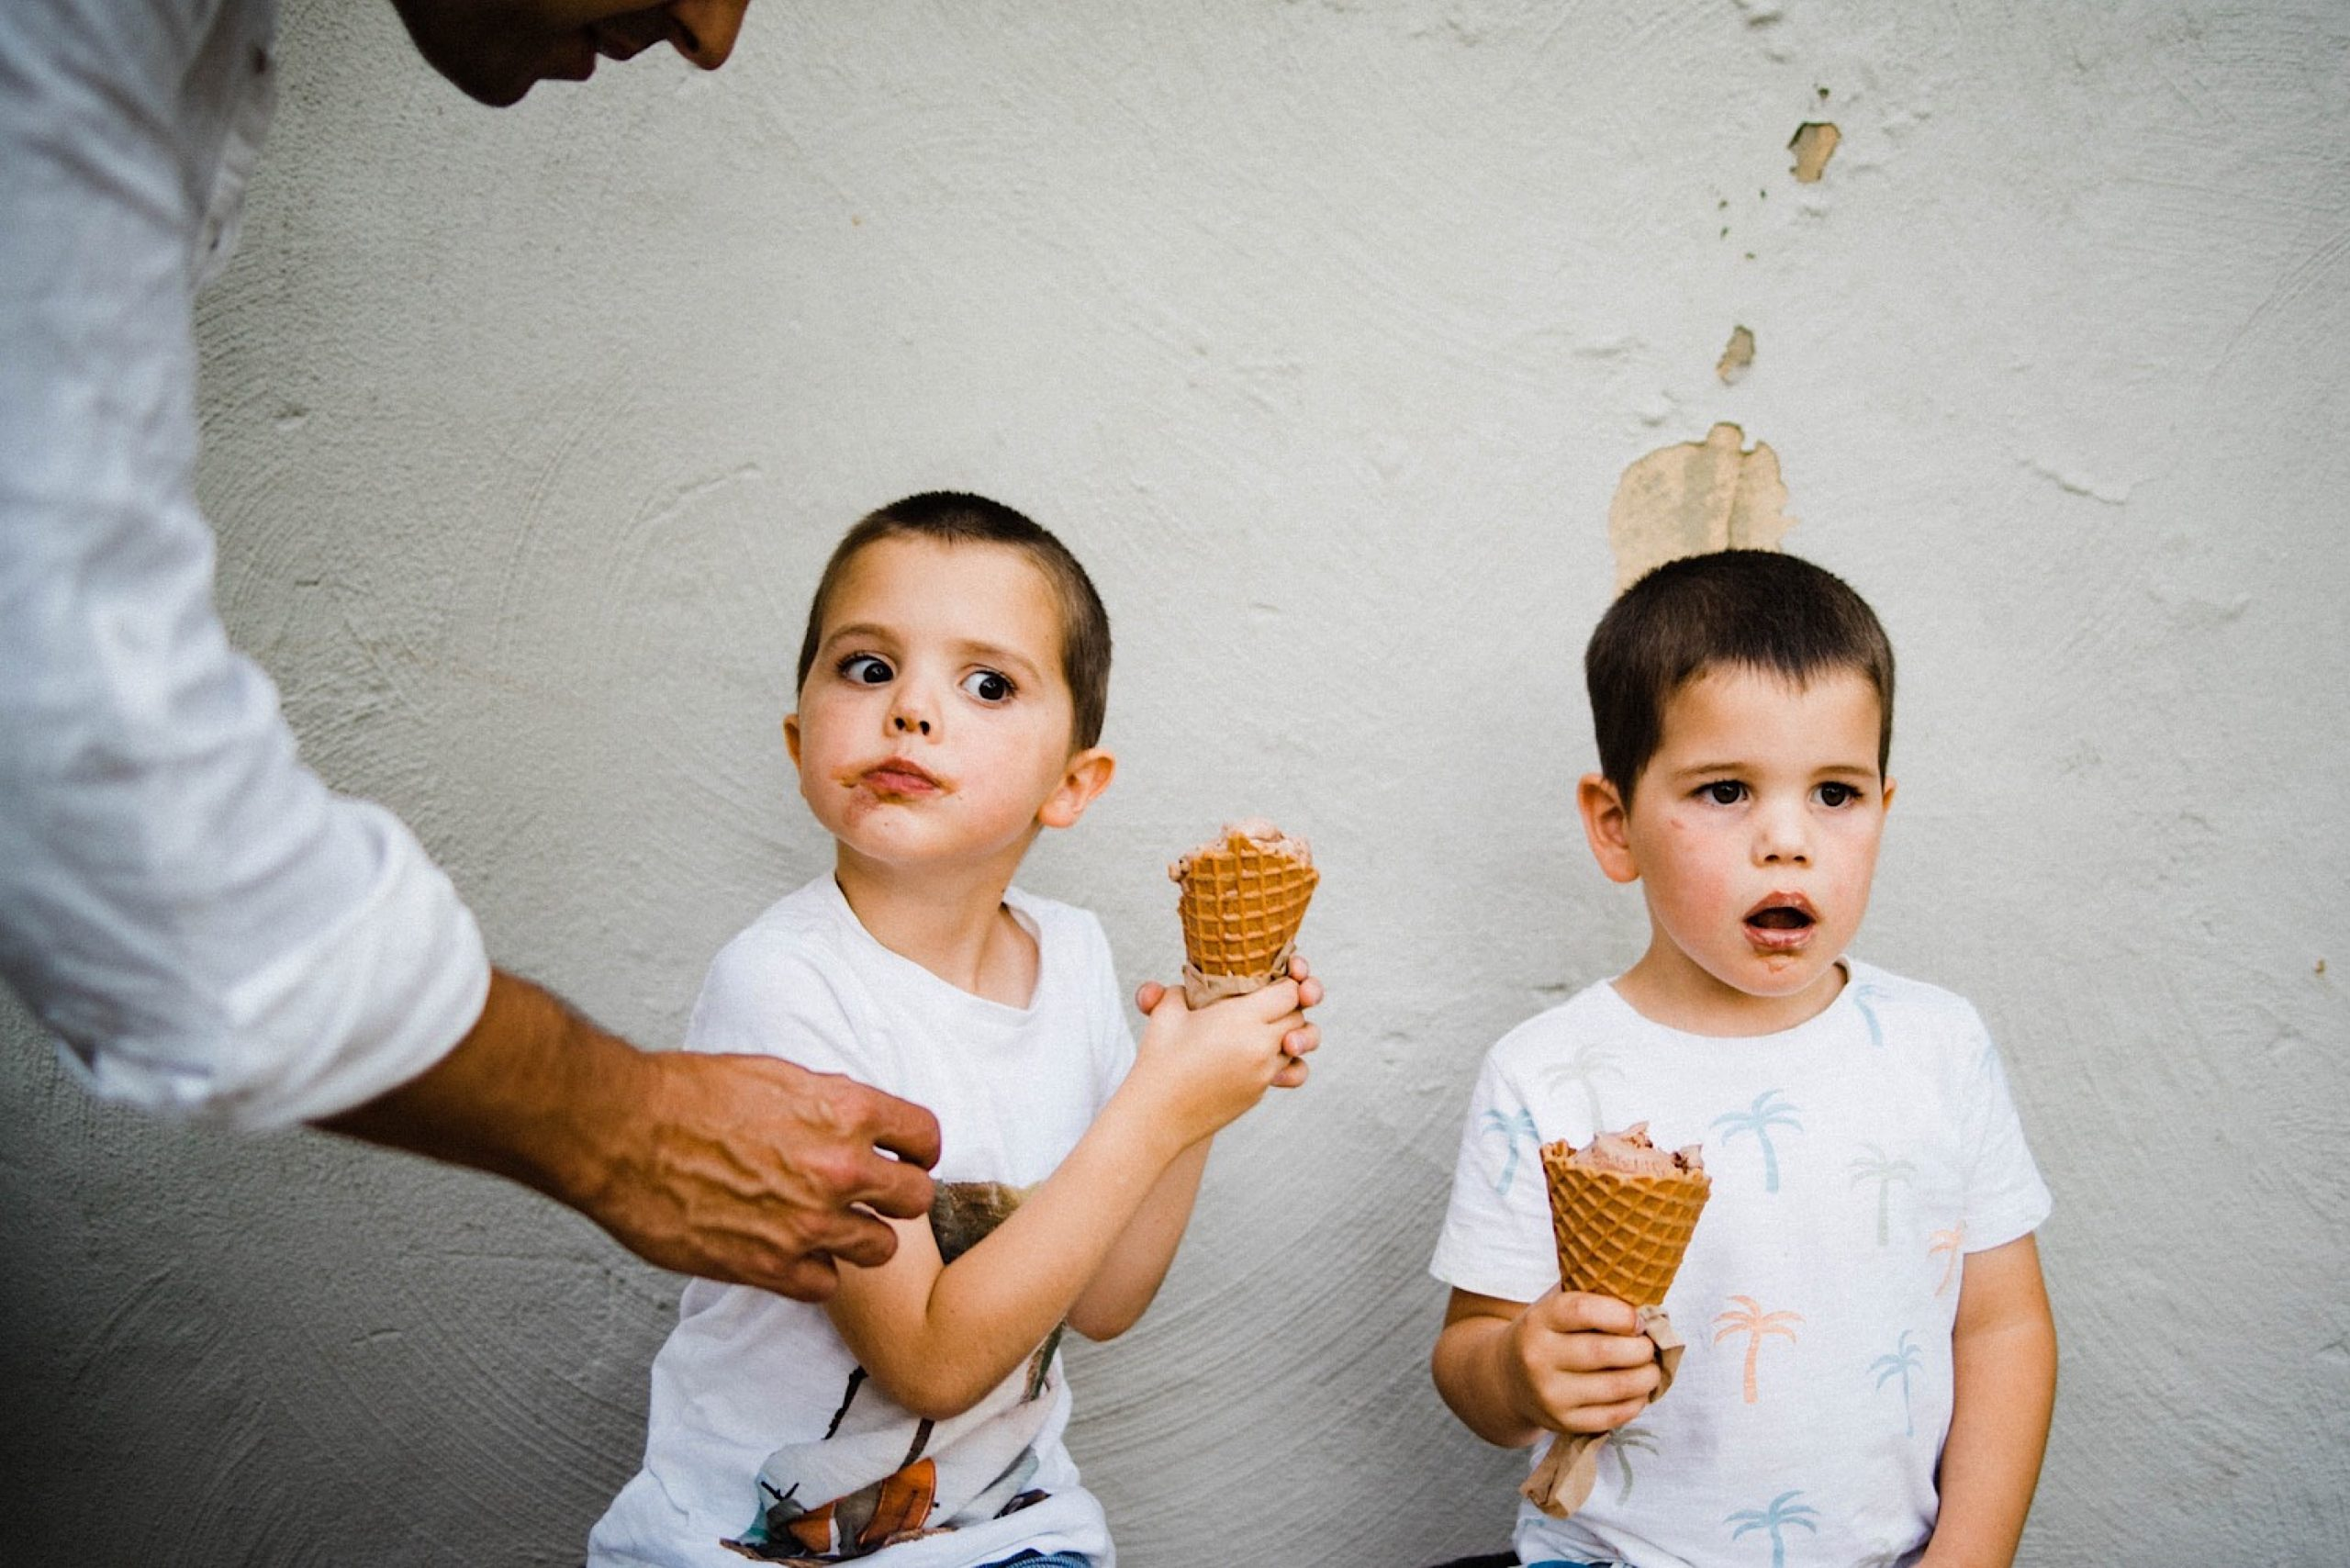 A candid Fremantle family photo of two brothers eating ice cream from Kuld Creamery in Fremantle, one looking upset and pulling his ice cream away from his Dad, who's reaching over to try his ice cream.